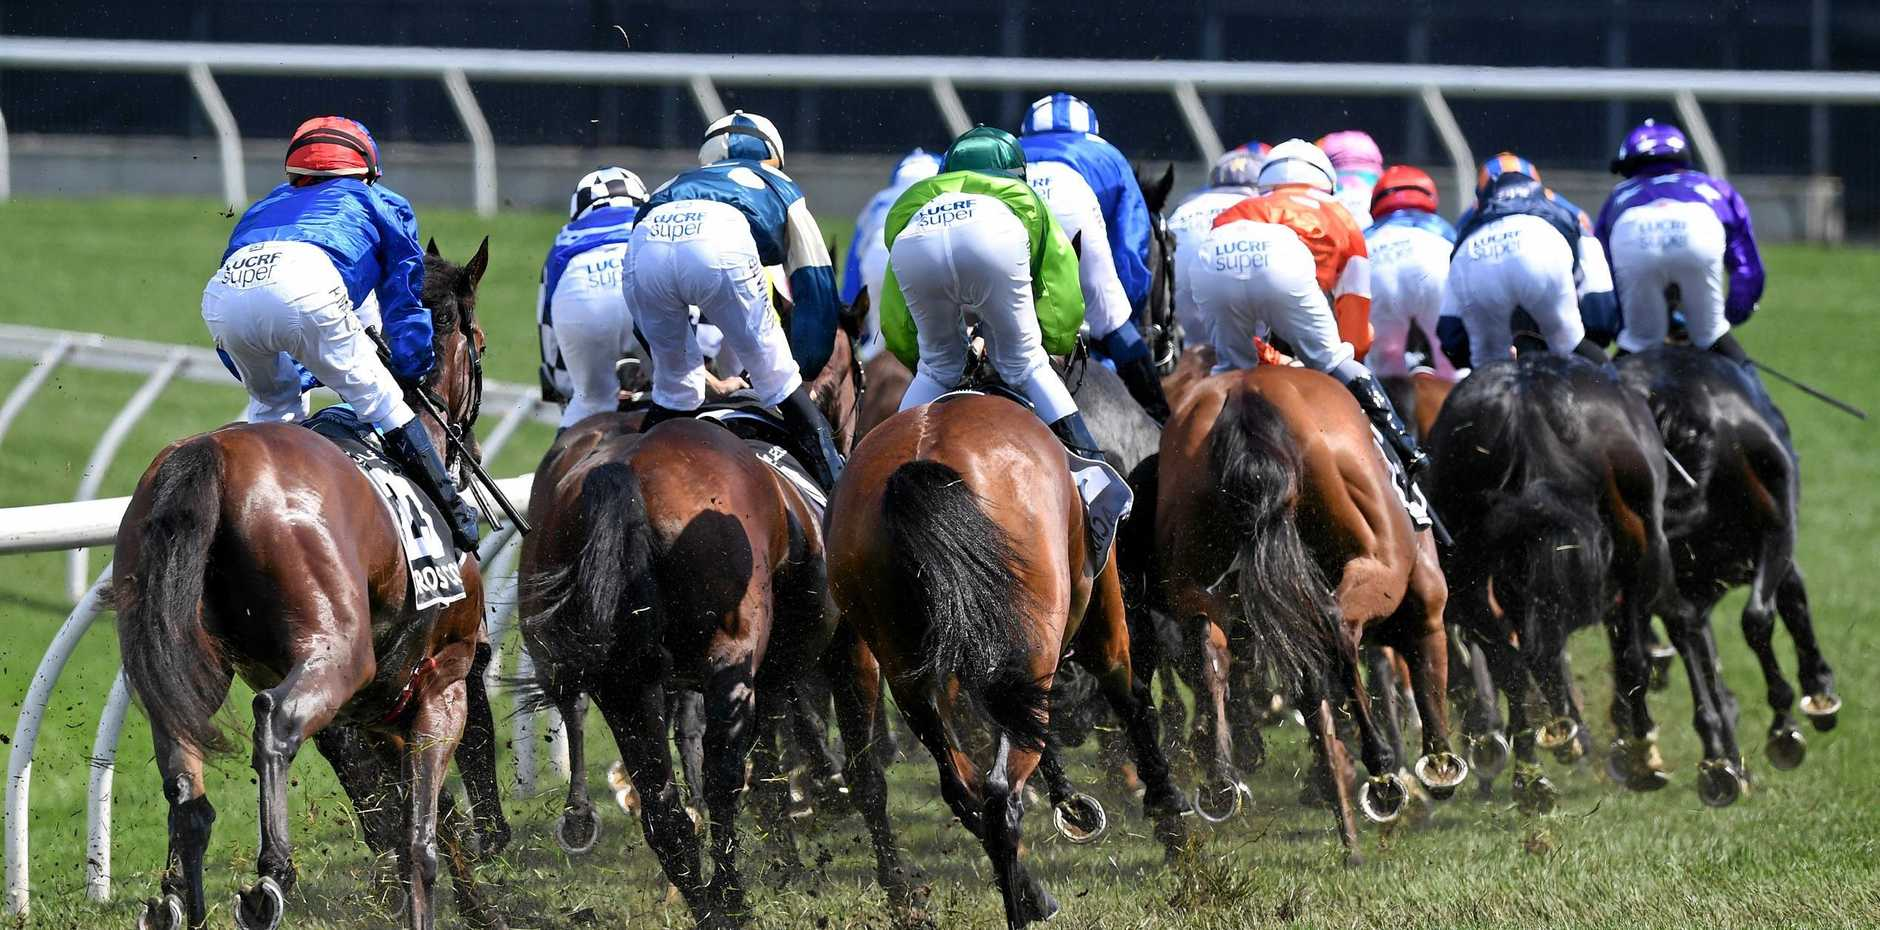 THE BIG RACE: The field rounds the turn on the first lap during the Lexus Melbourne Cup.